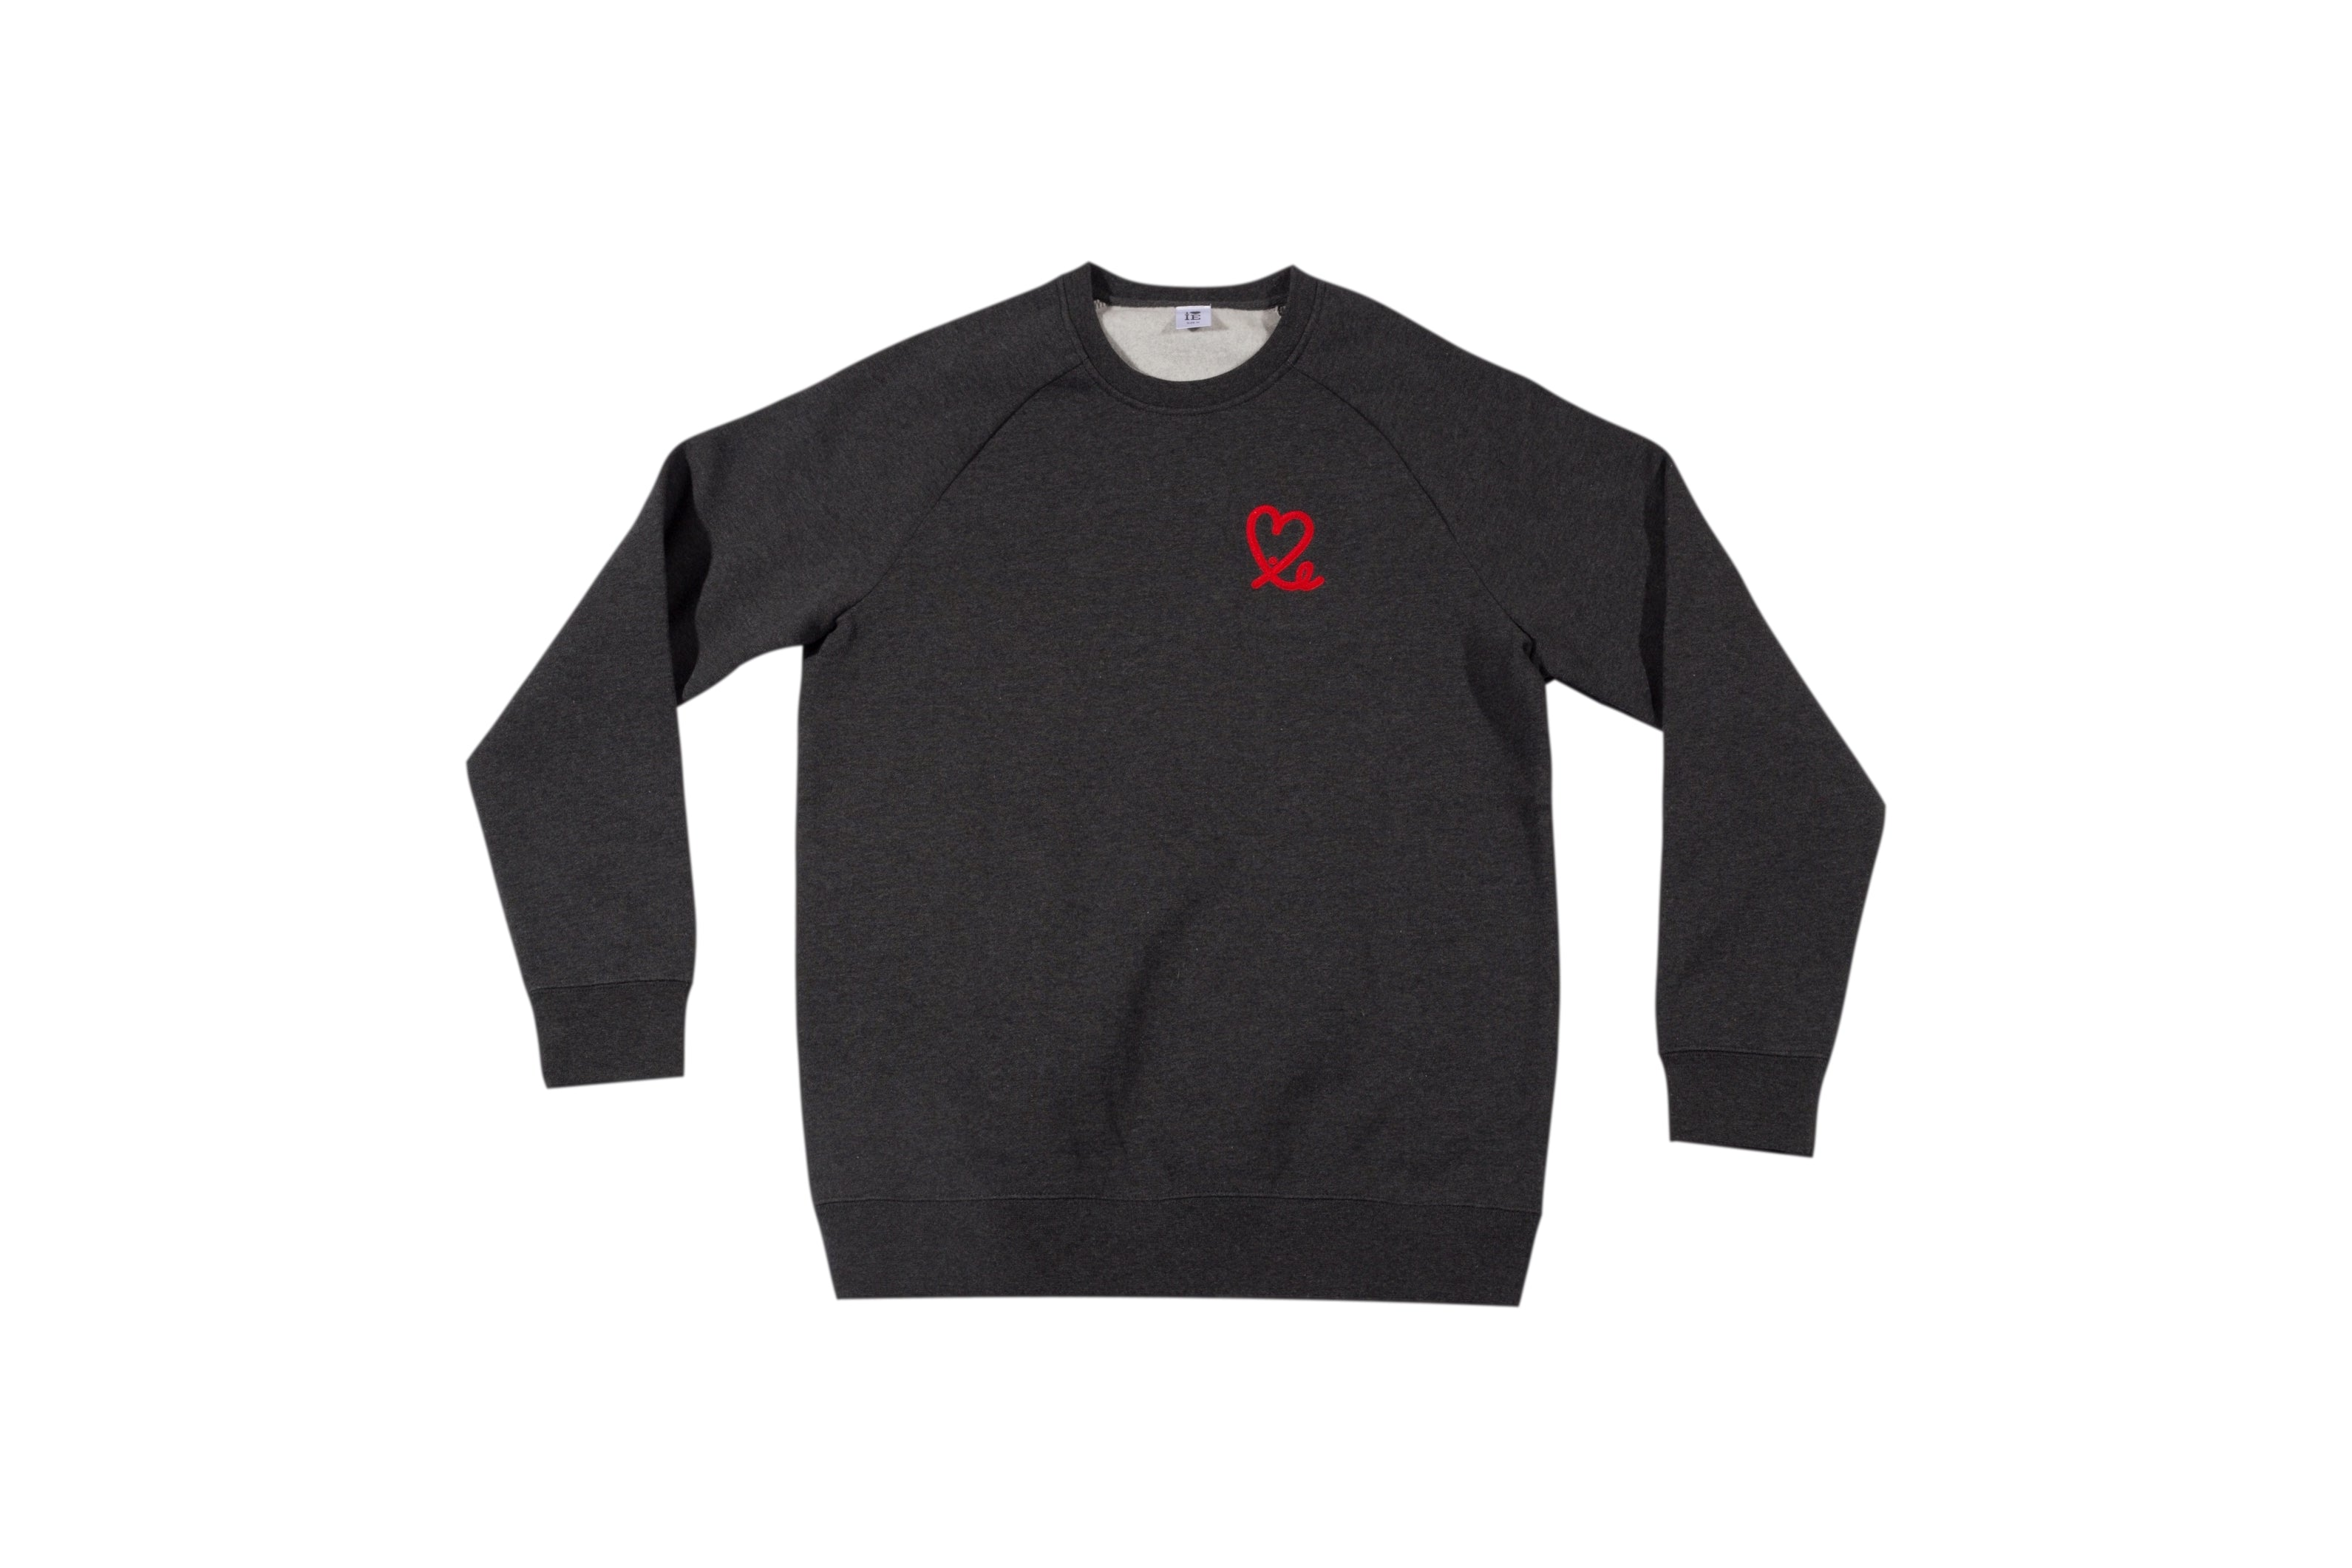 Charcoal Grey Crew Neck Sweatshirt